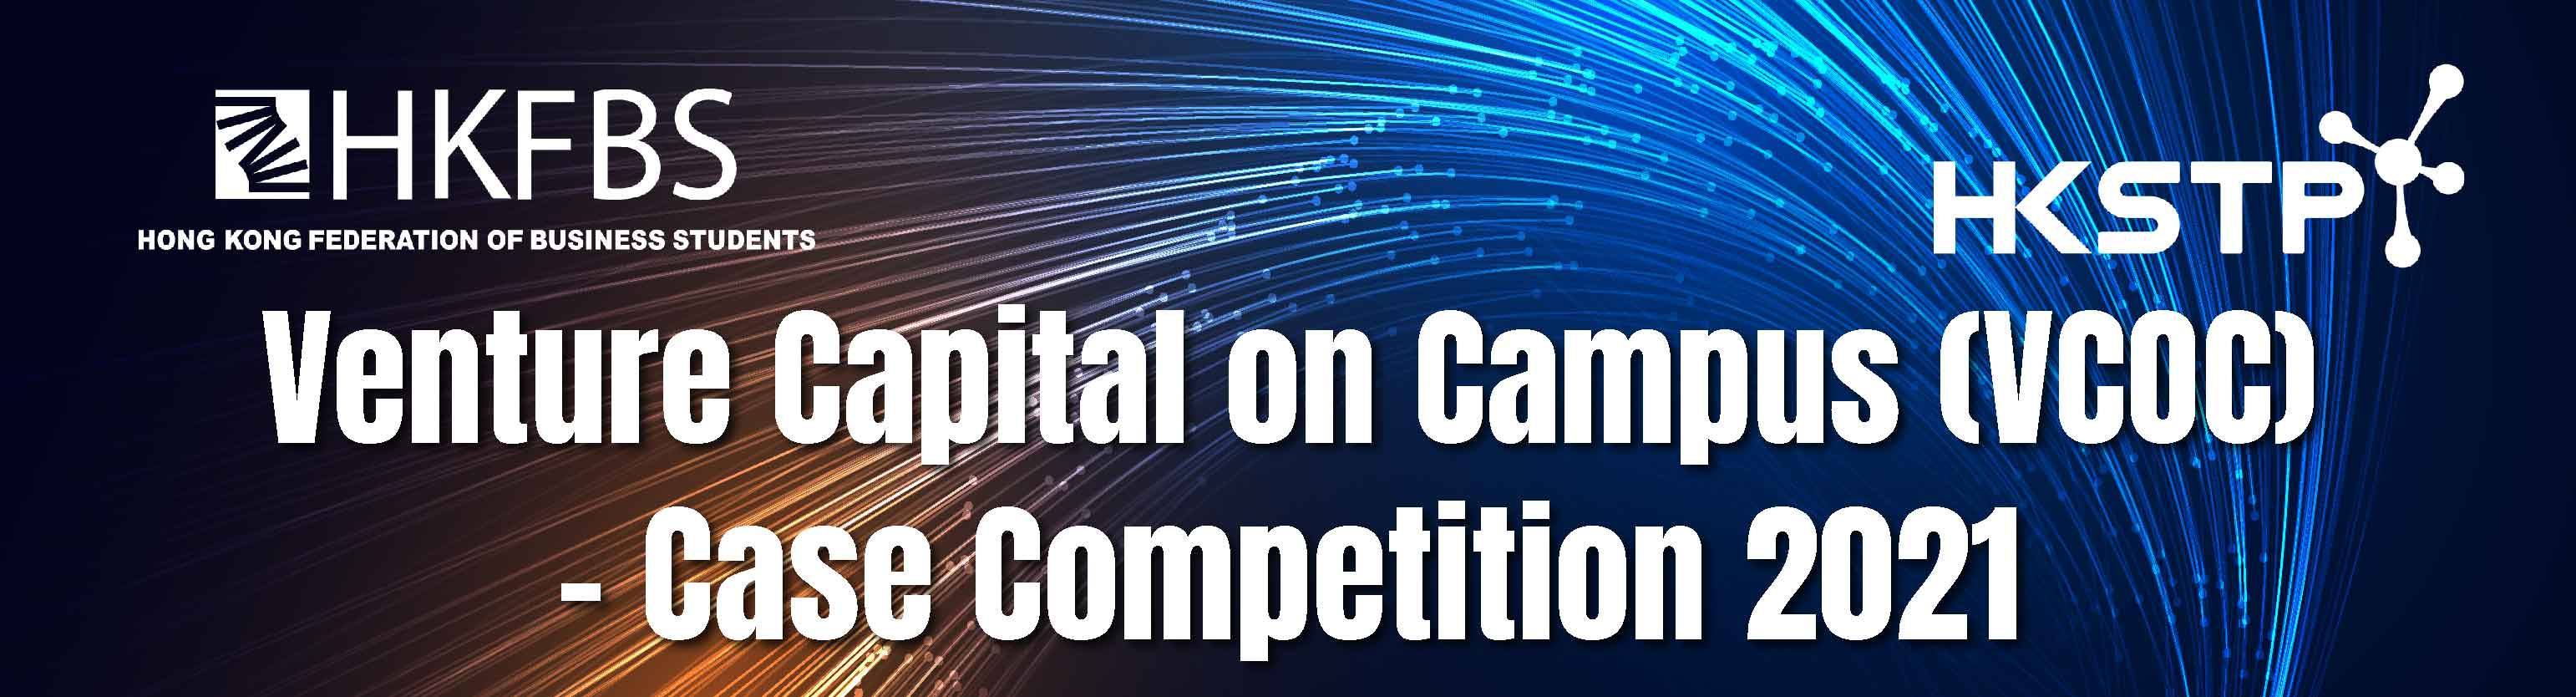 Venture Capital On Campus (VCOC) - Case Competition 2021